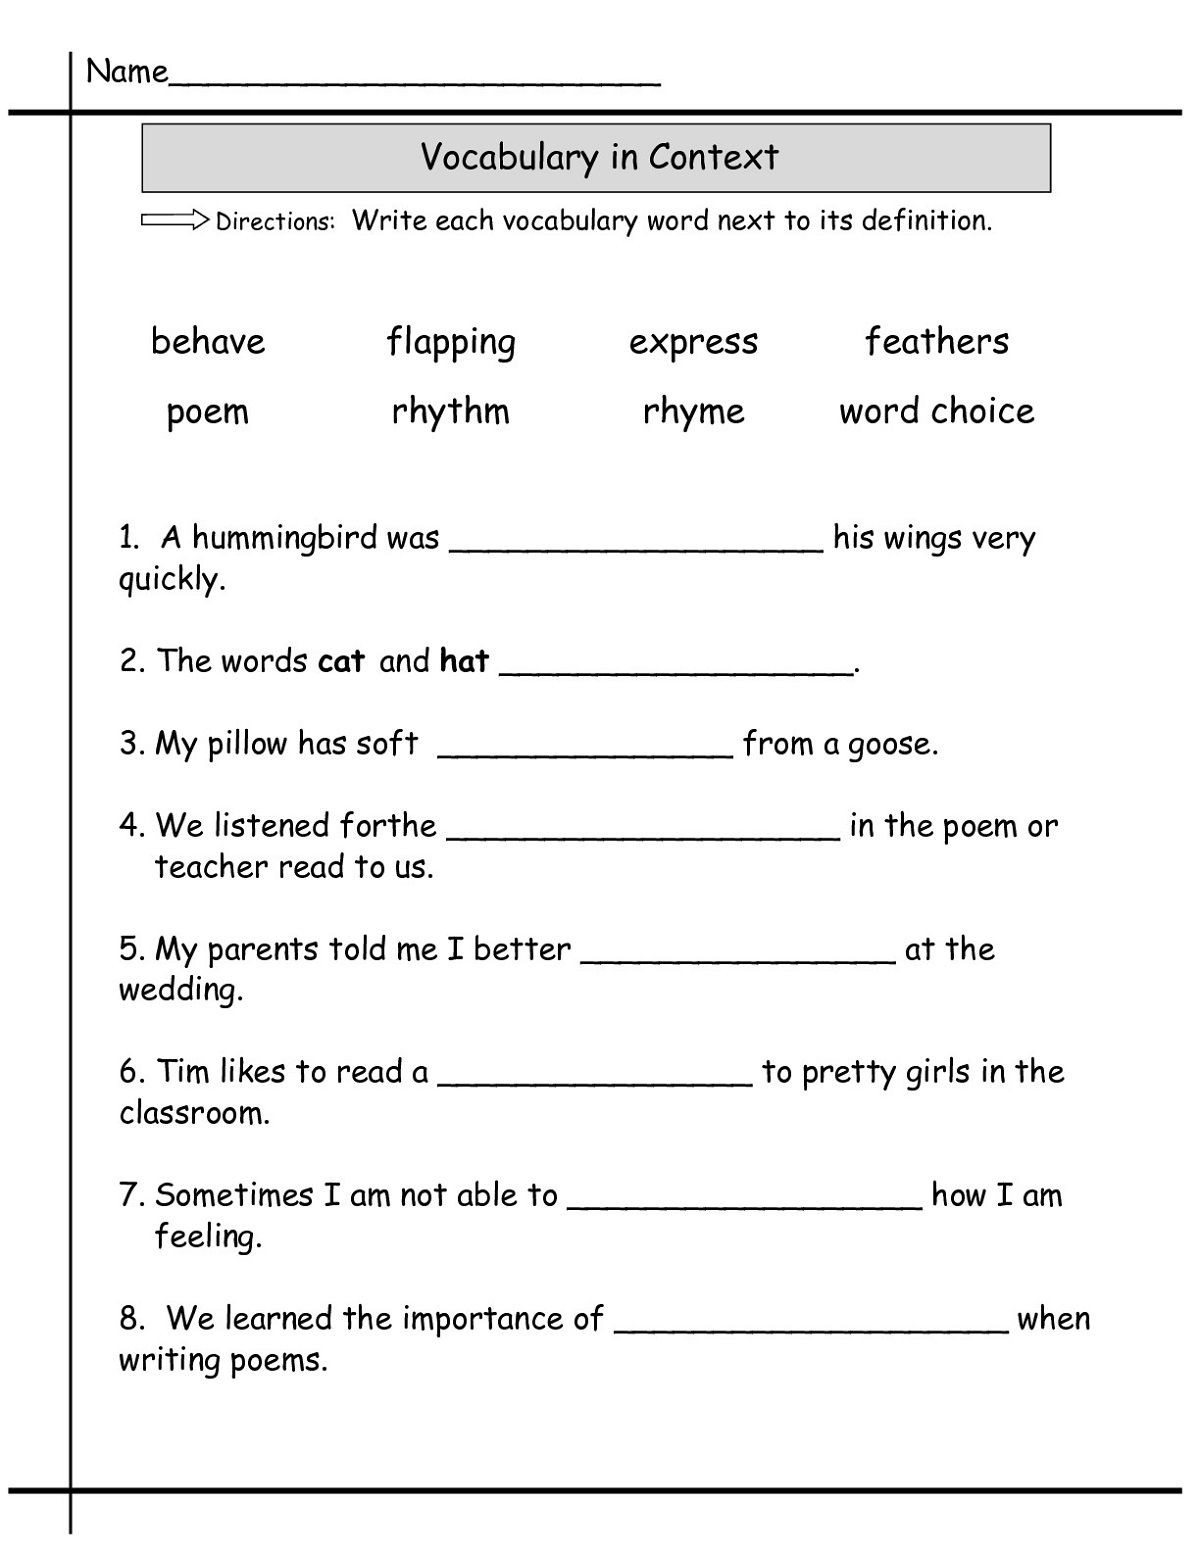 Phonics Worksheet Grade 2 Math Worksheet 2nd Grade Phonics Worksheets Math Worksheet